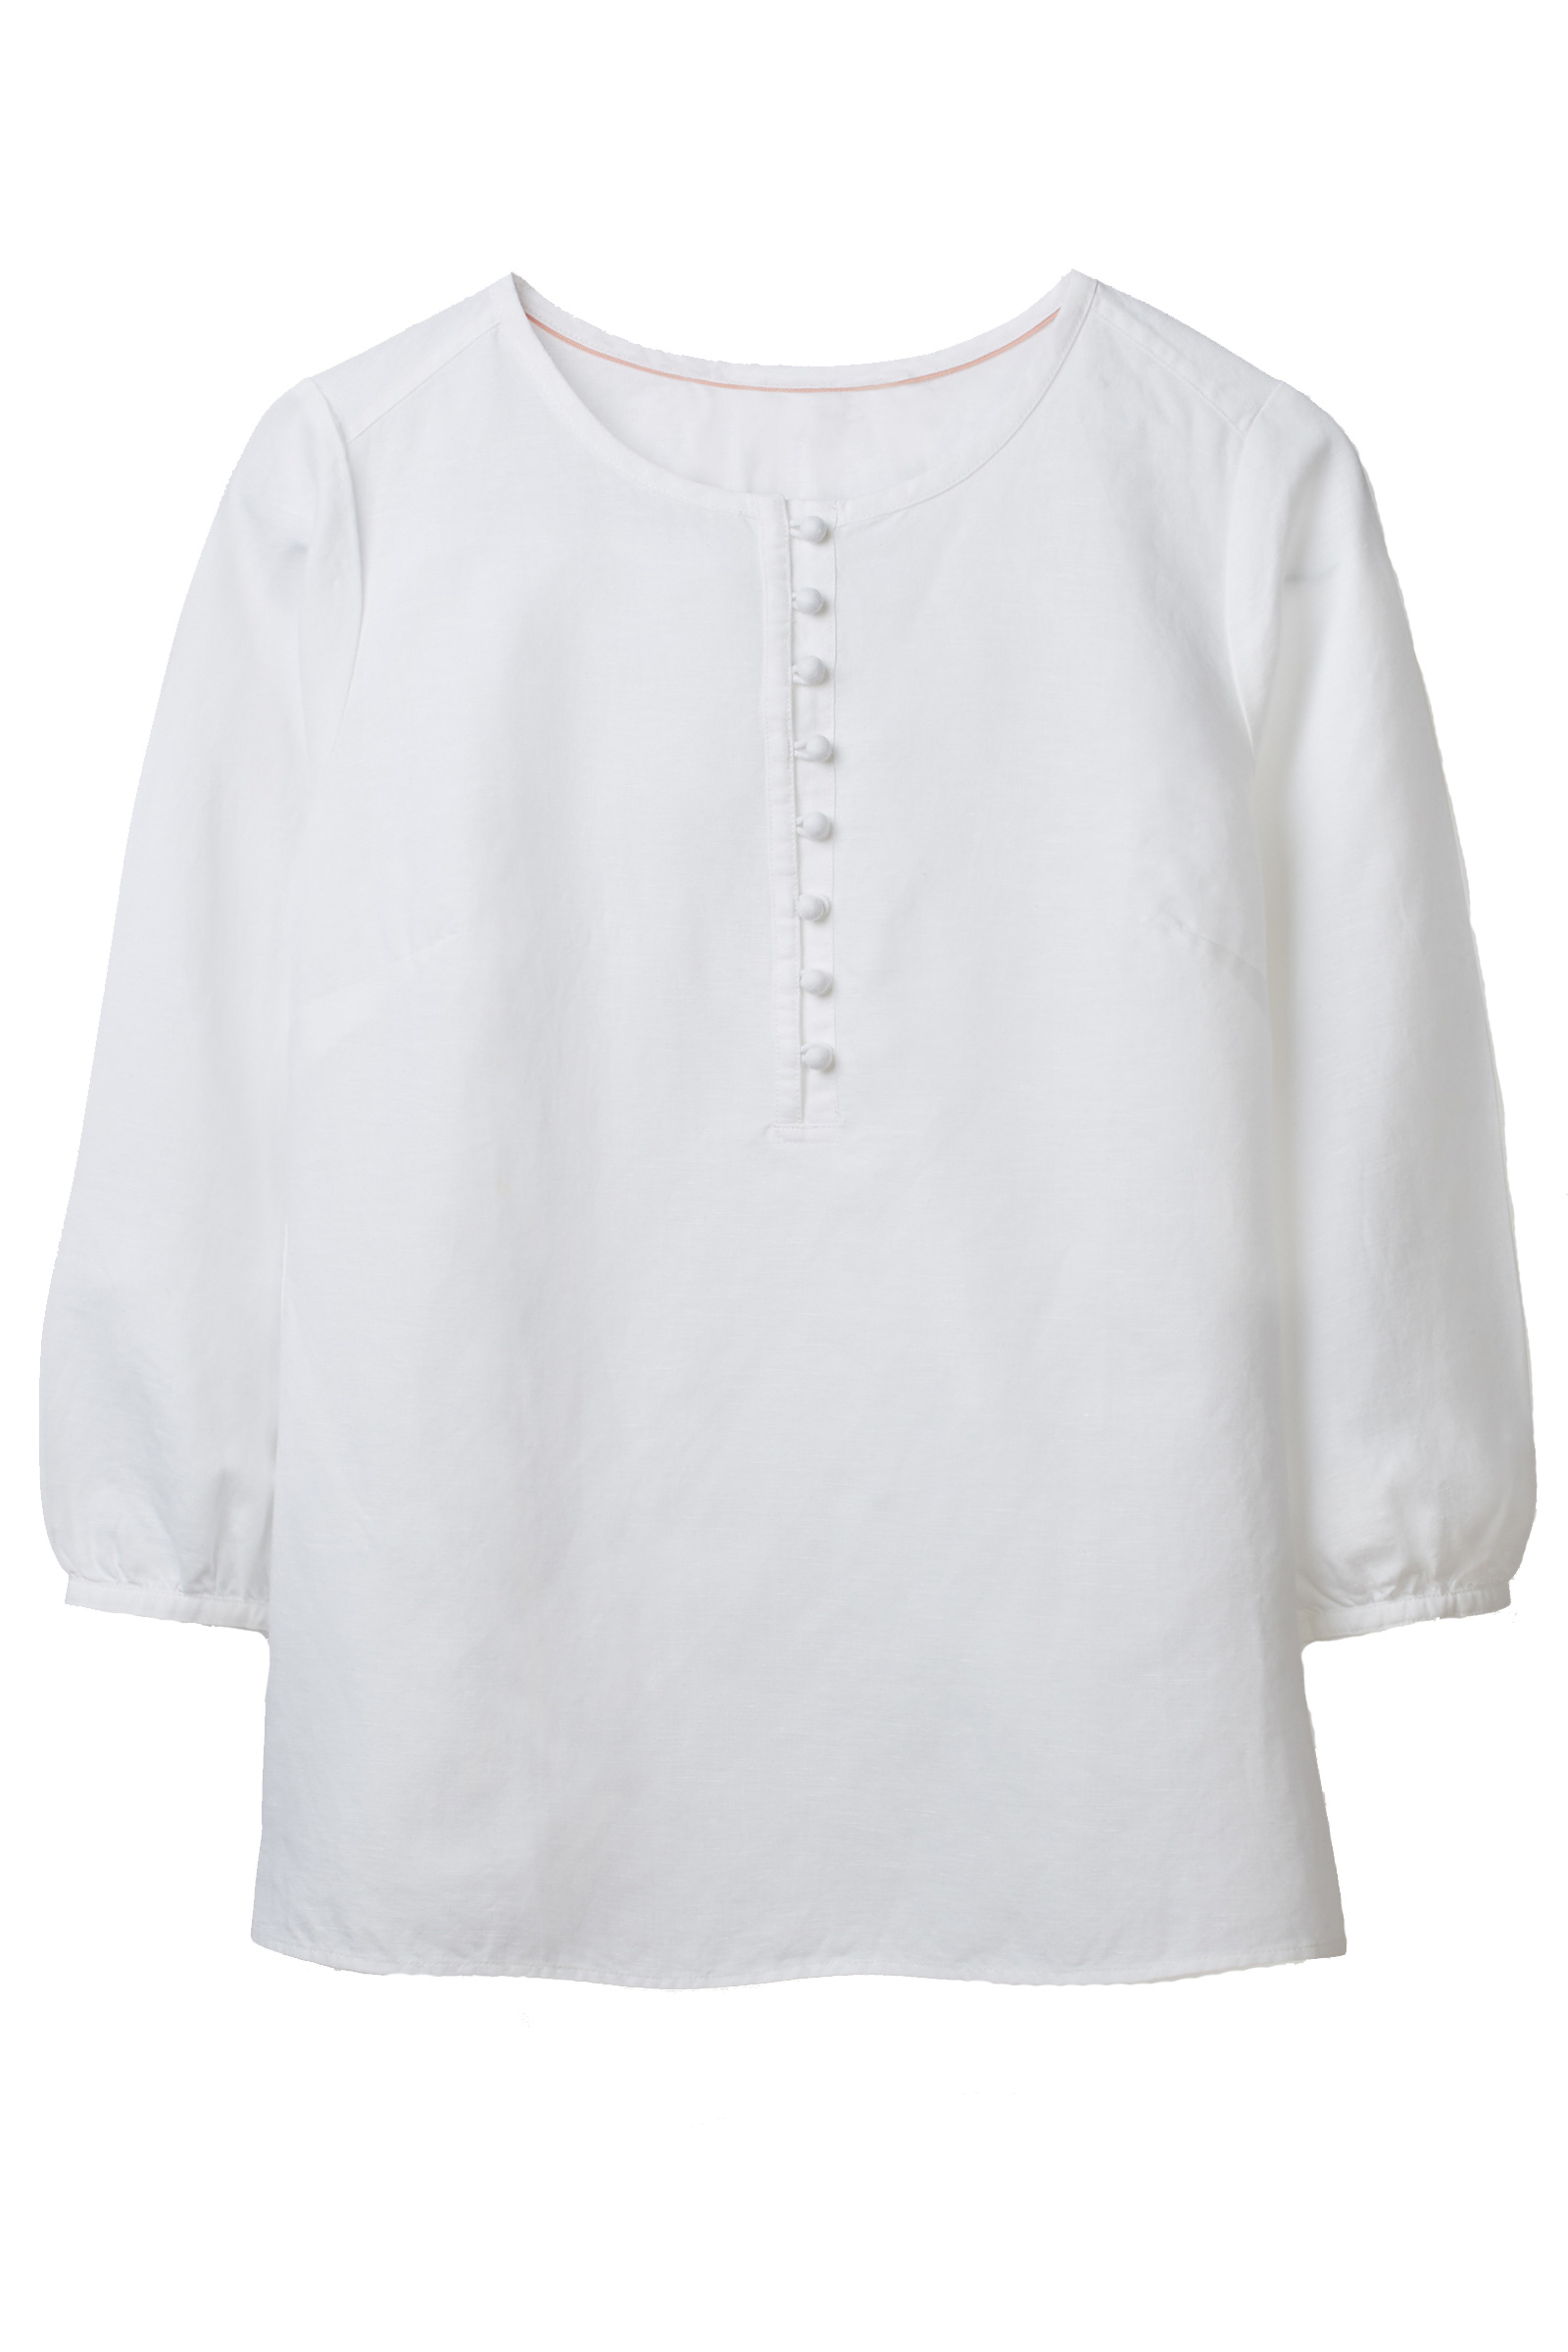 Click to Buy Boden-Top